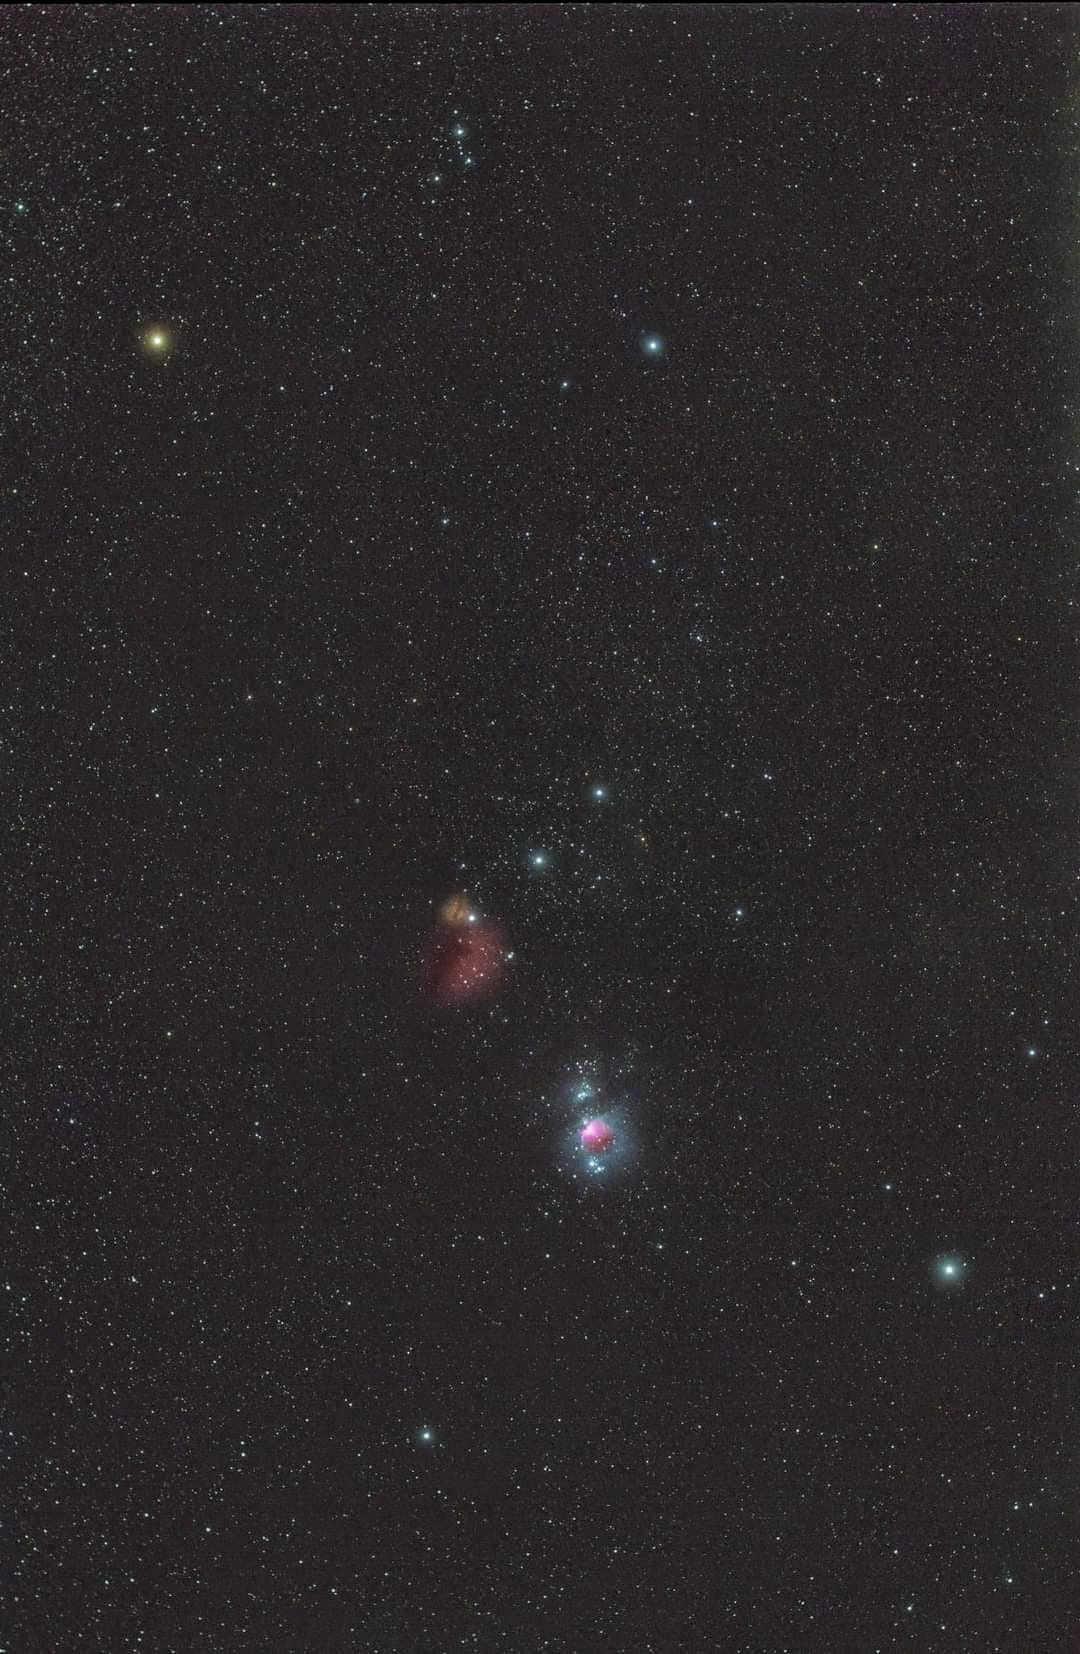 Picture of Orion Nebula and surrounding stars by Muhammad Ali Pakistan